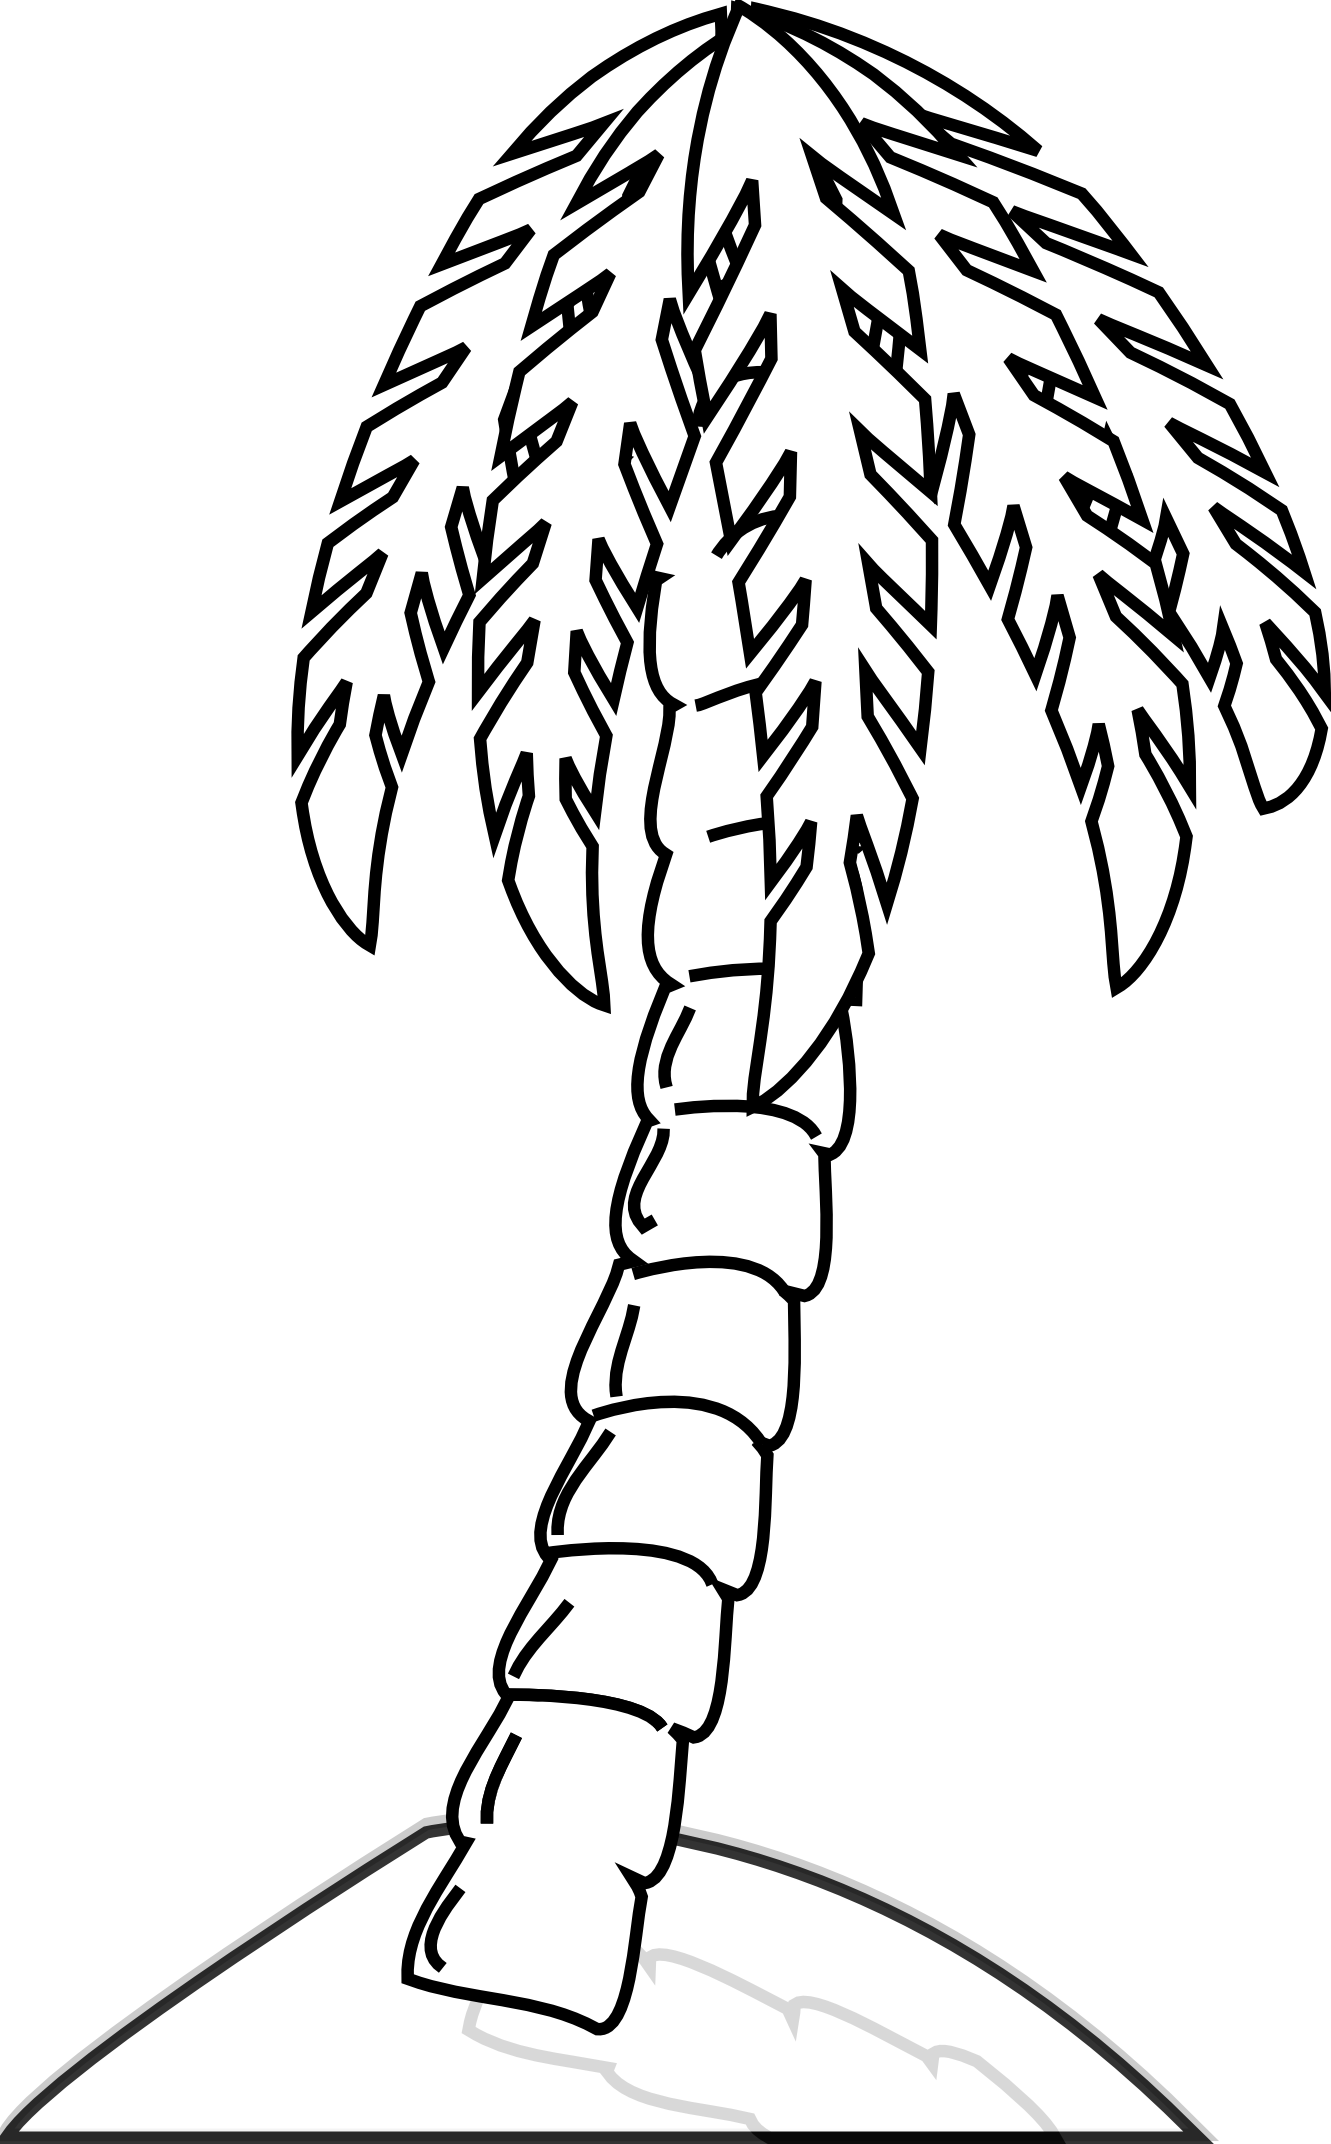 Palm tree clipart vector clip art black and white download 28+ Collection of Banana Tree Line Drawing | High quality, free ... clip art black and white download